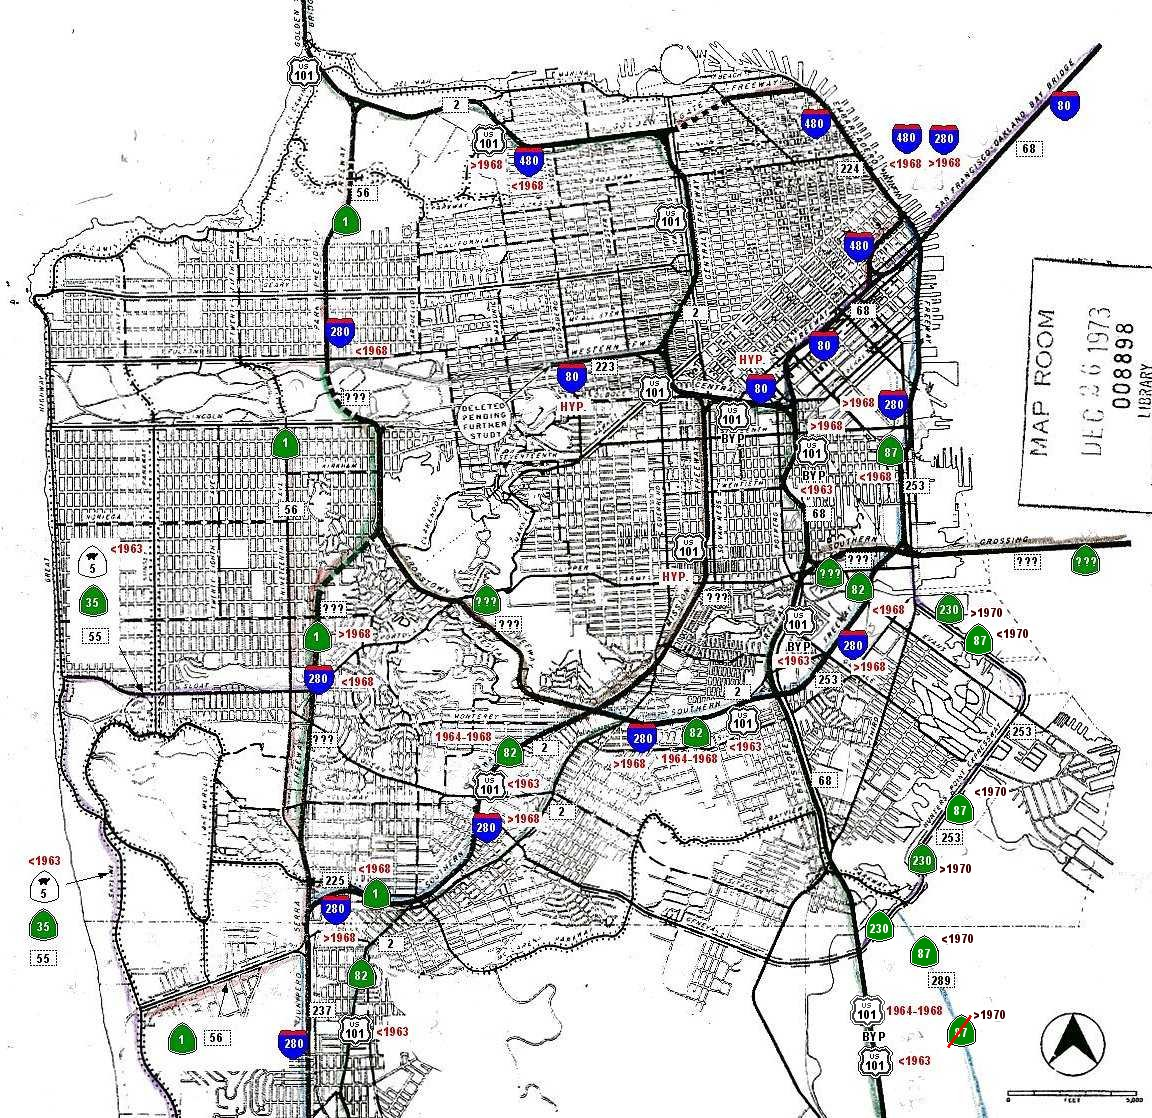 san francisco figure 1 2 1955 trafficways plan click on the image for a full size map full size image size 309k